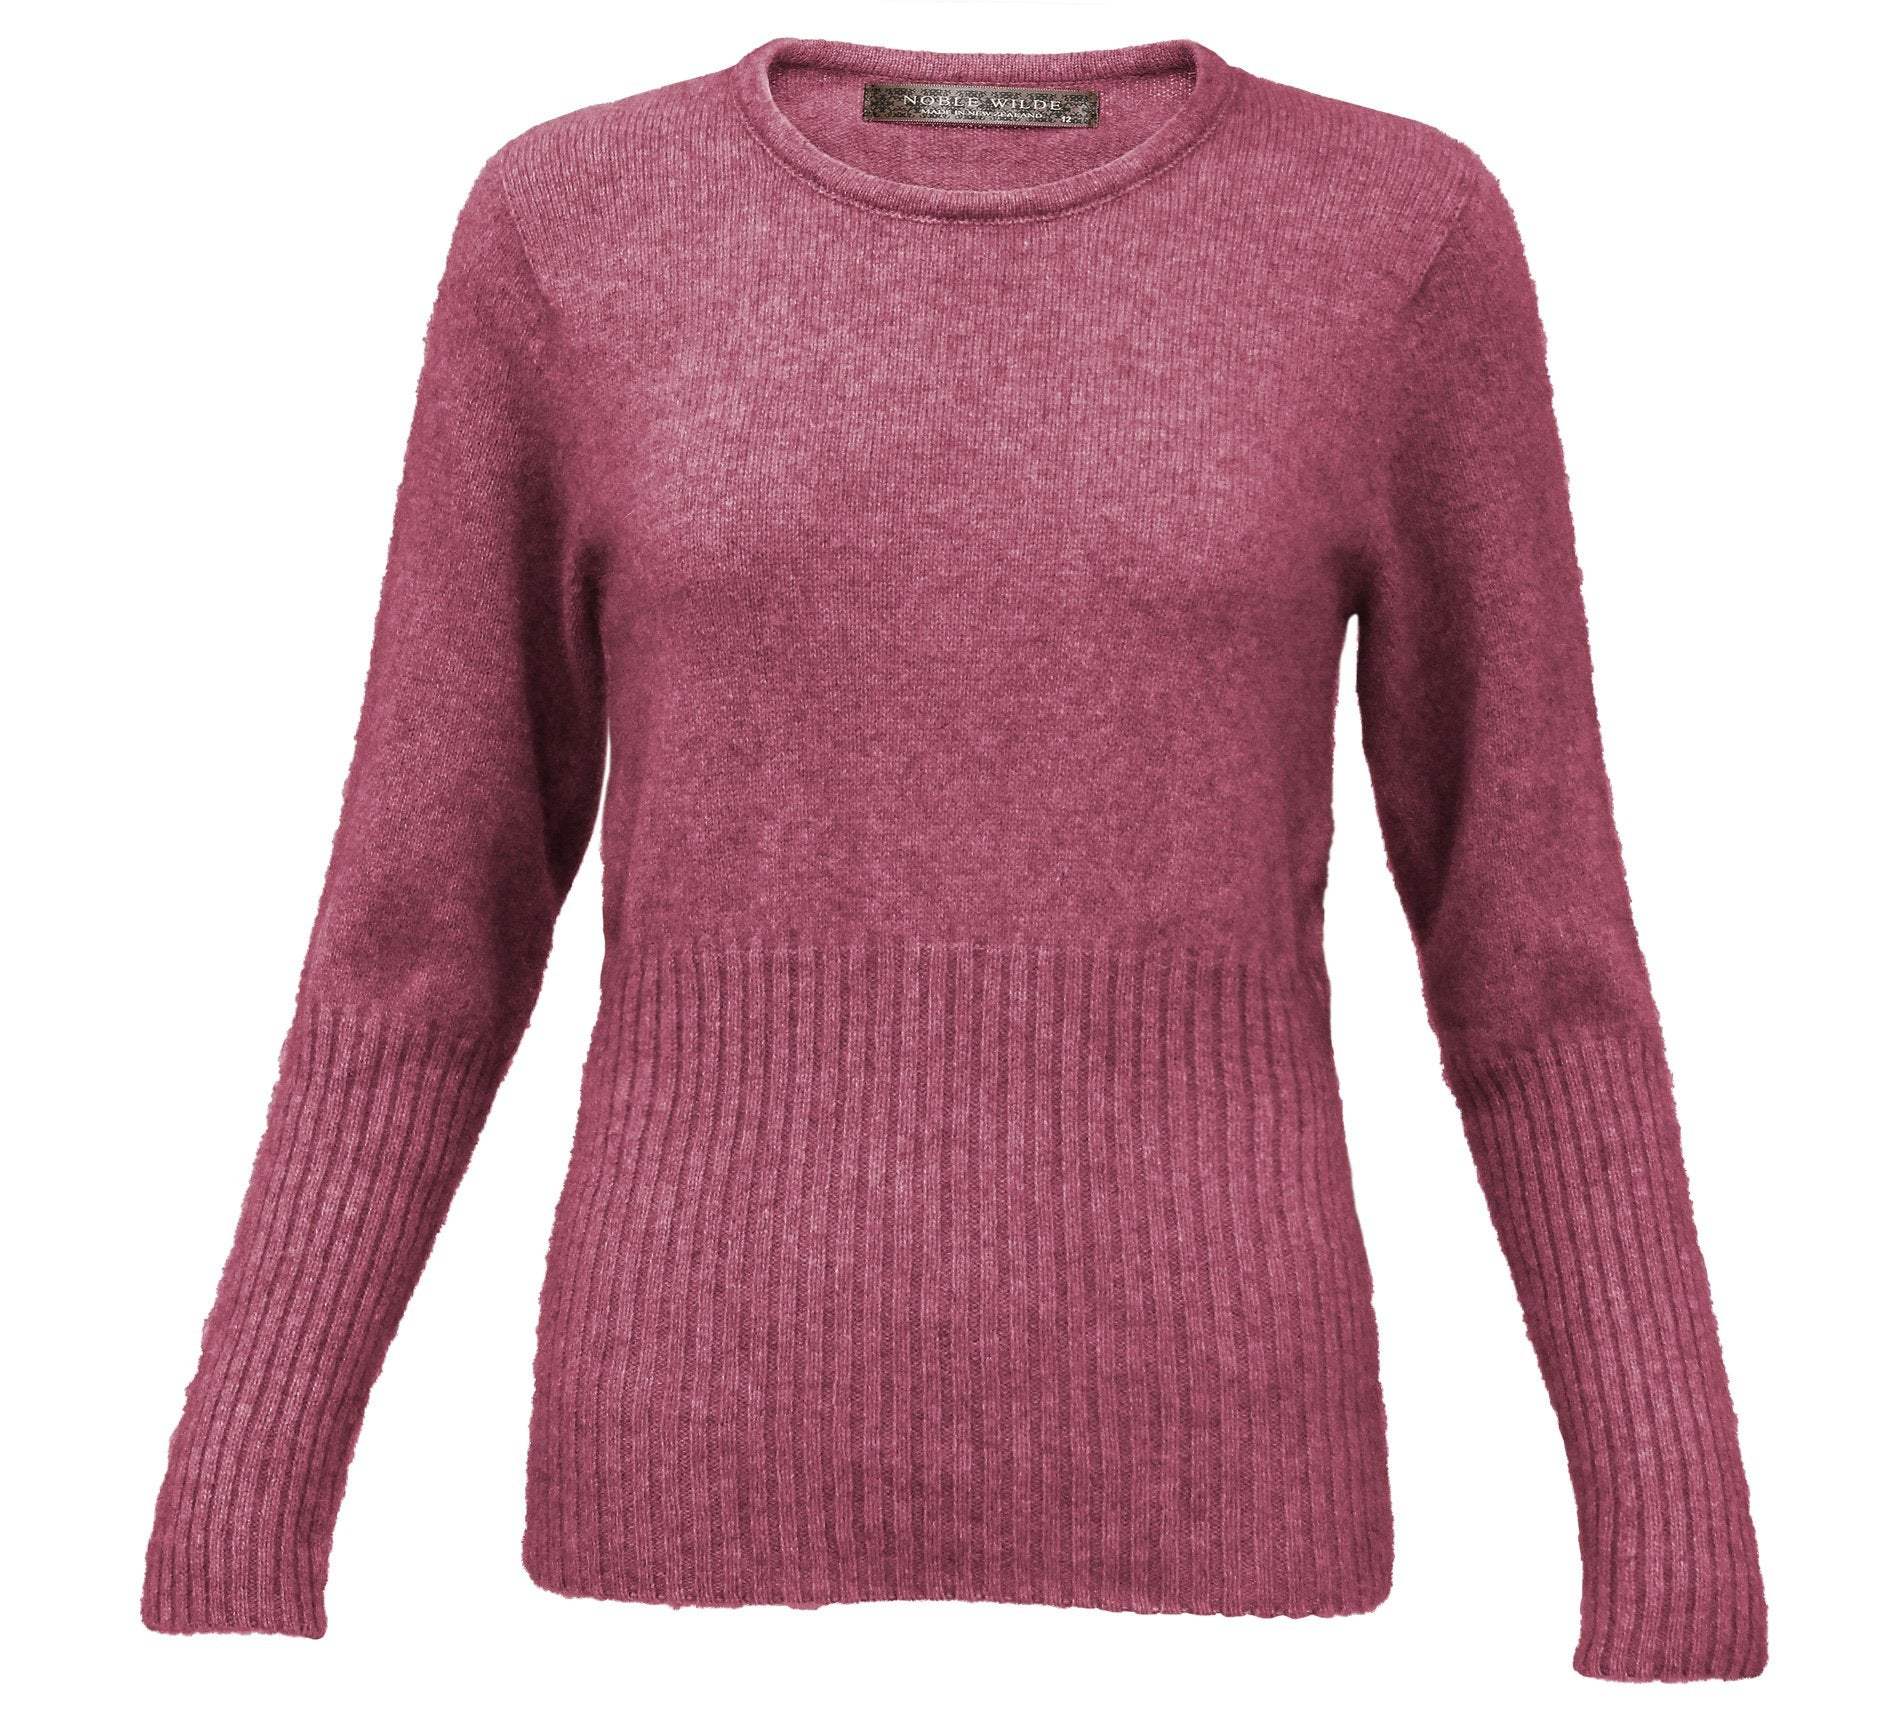 RIB CREW NECK - Woolshed Gallery